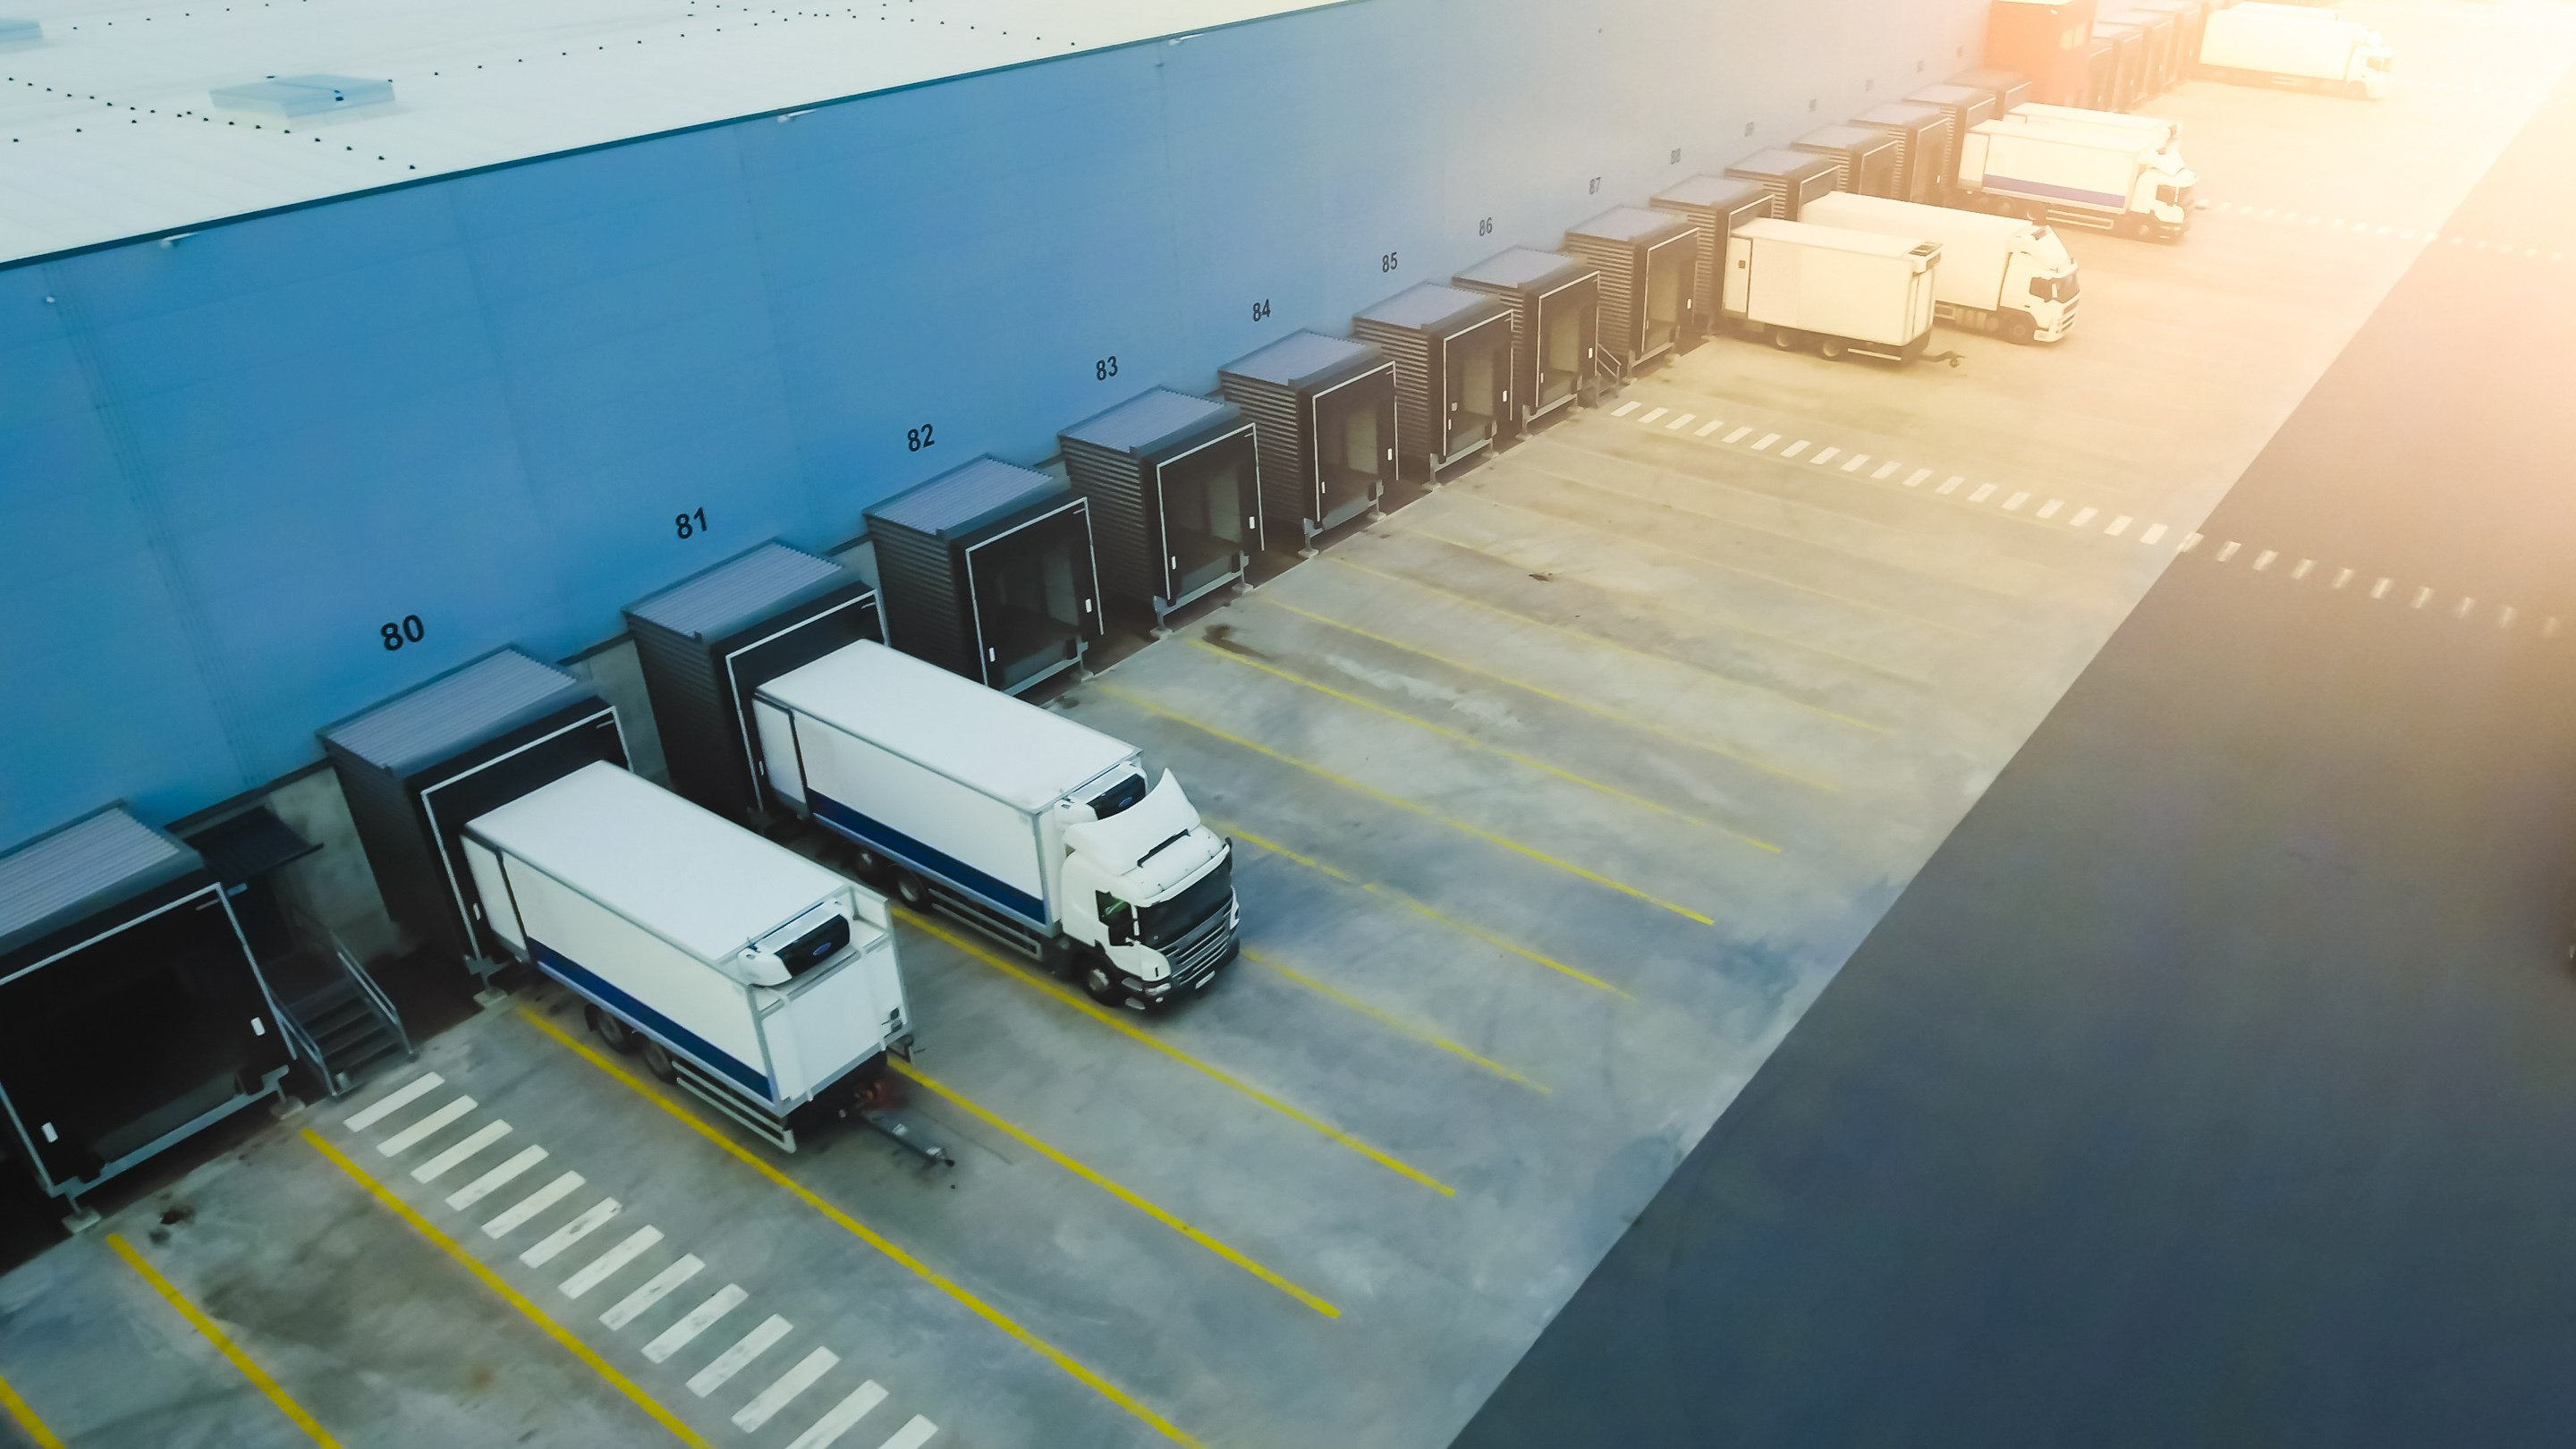 Aerial Shot of Industrial Warehouse Loading Dock where Many Truck with Semi Trailers Load Merchandise.